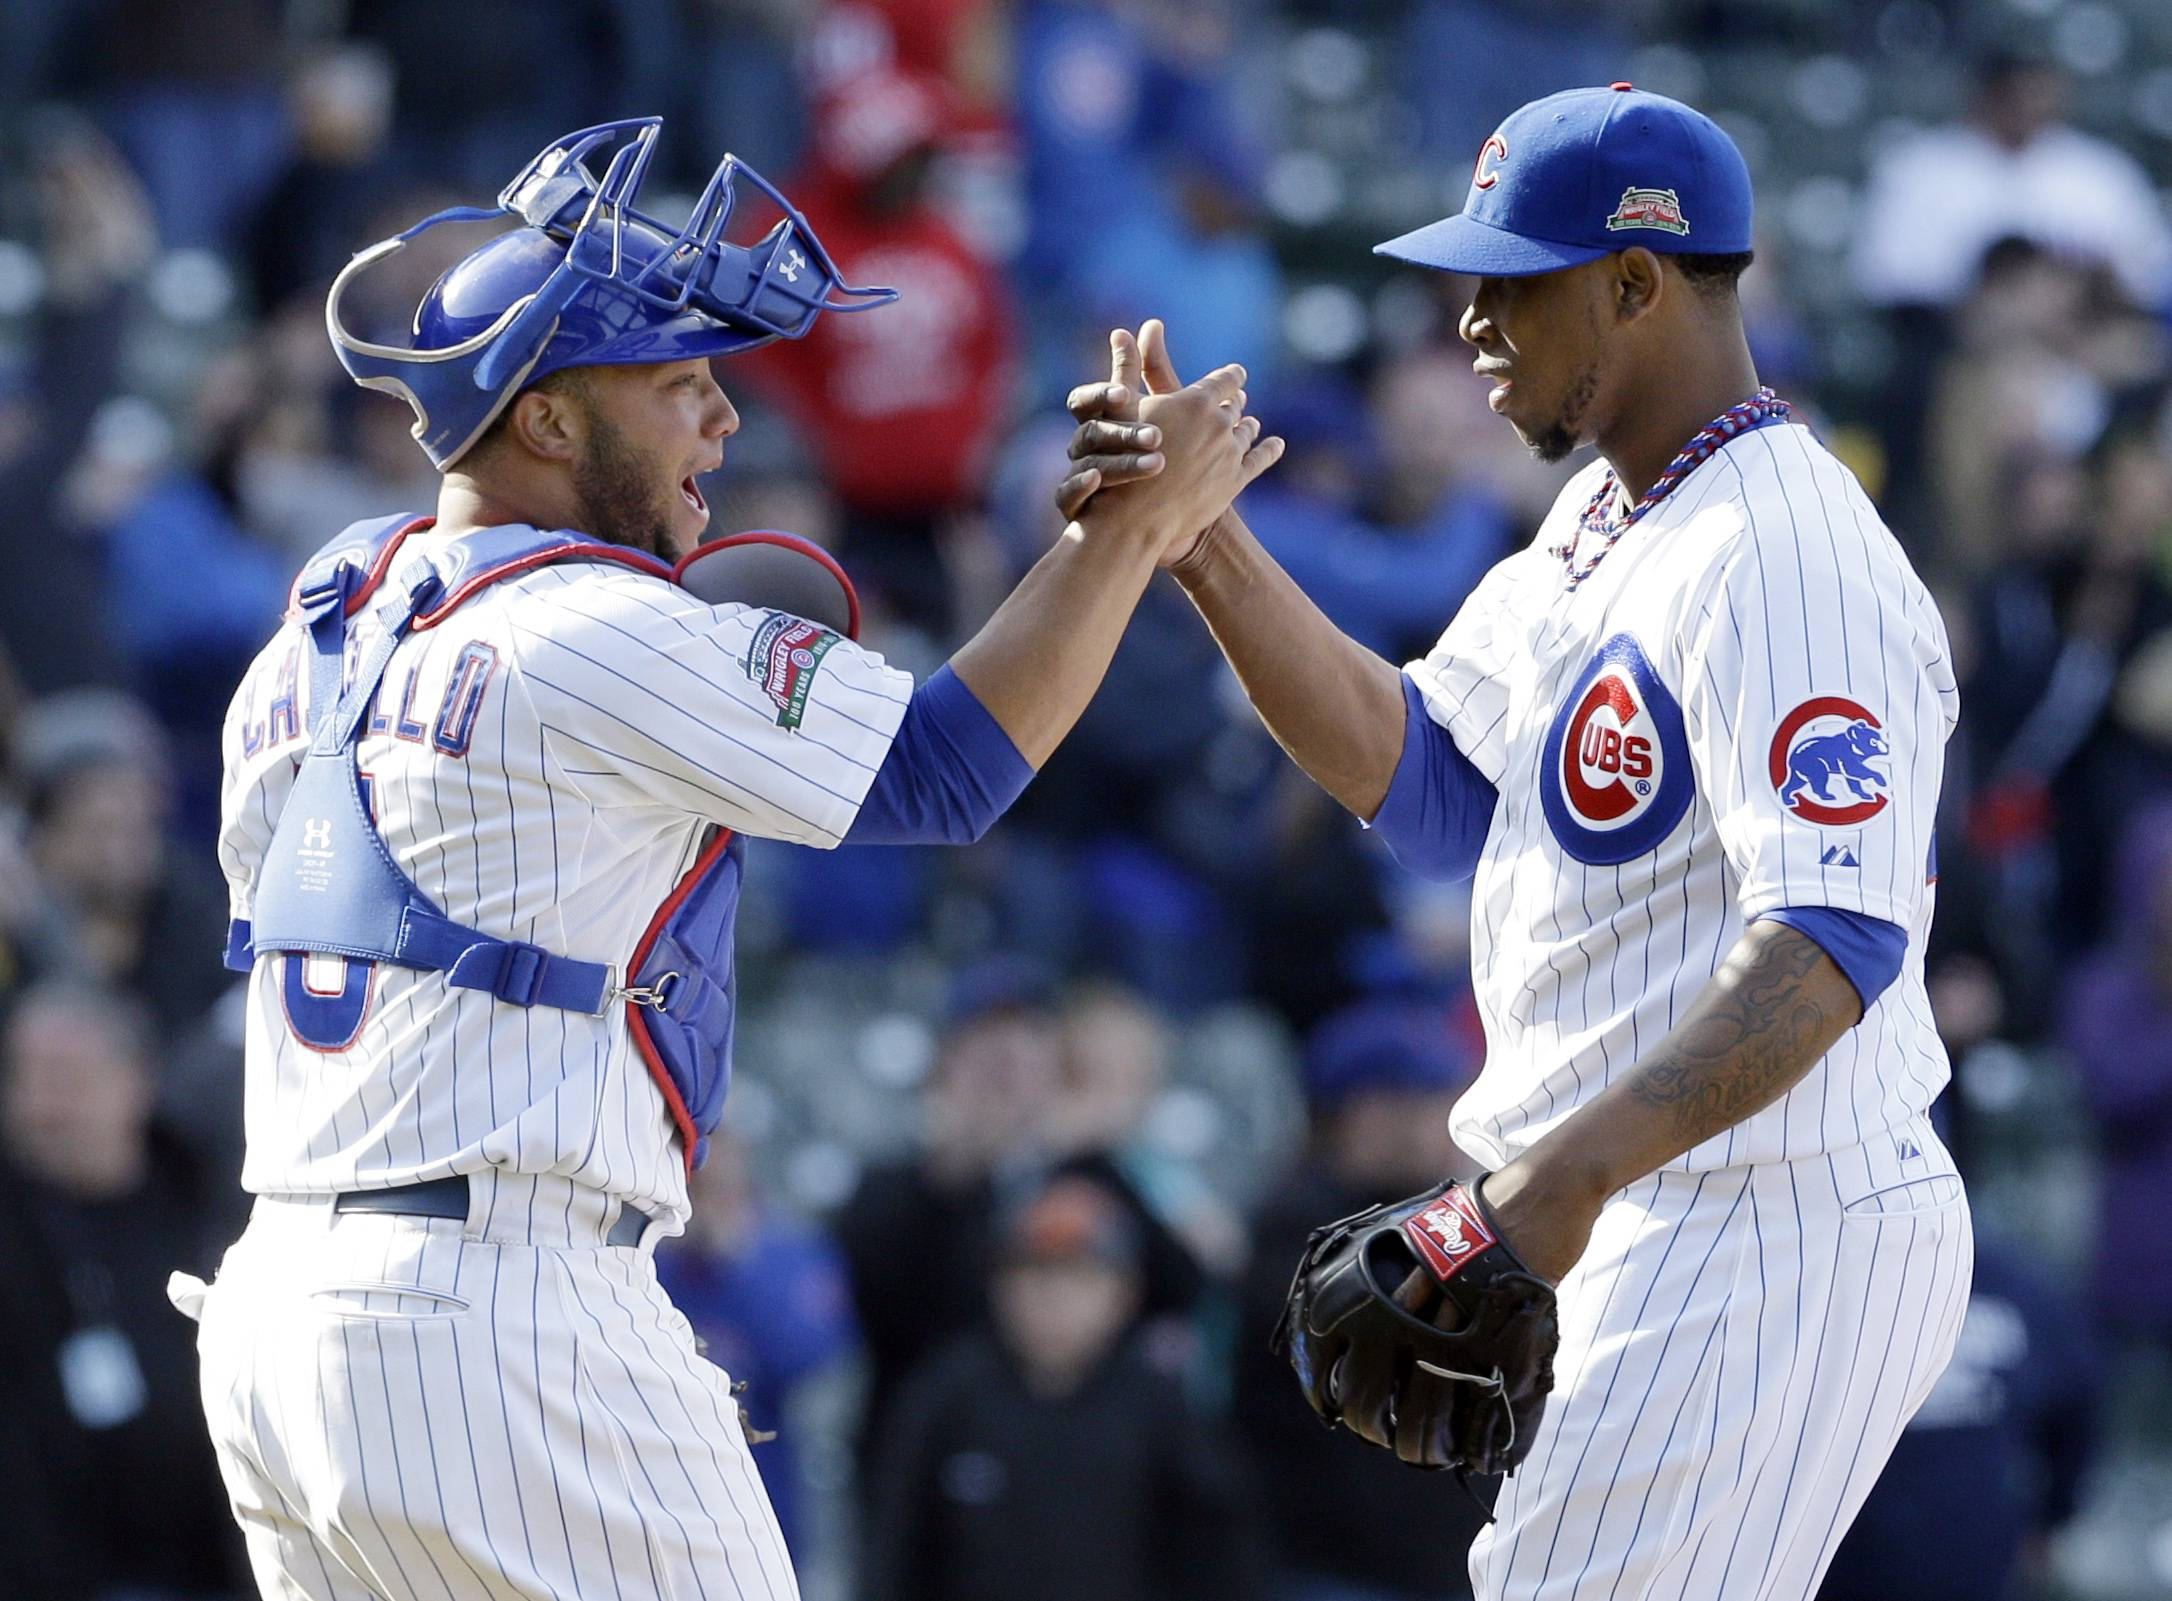 Cubs relief pitcher Pedro Strop, right, celebrates with catcher Welington Castillo after the Cubs defeated the Cincinnati Reds 8-4 Saturday at Wrigley Field.